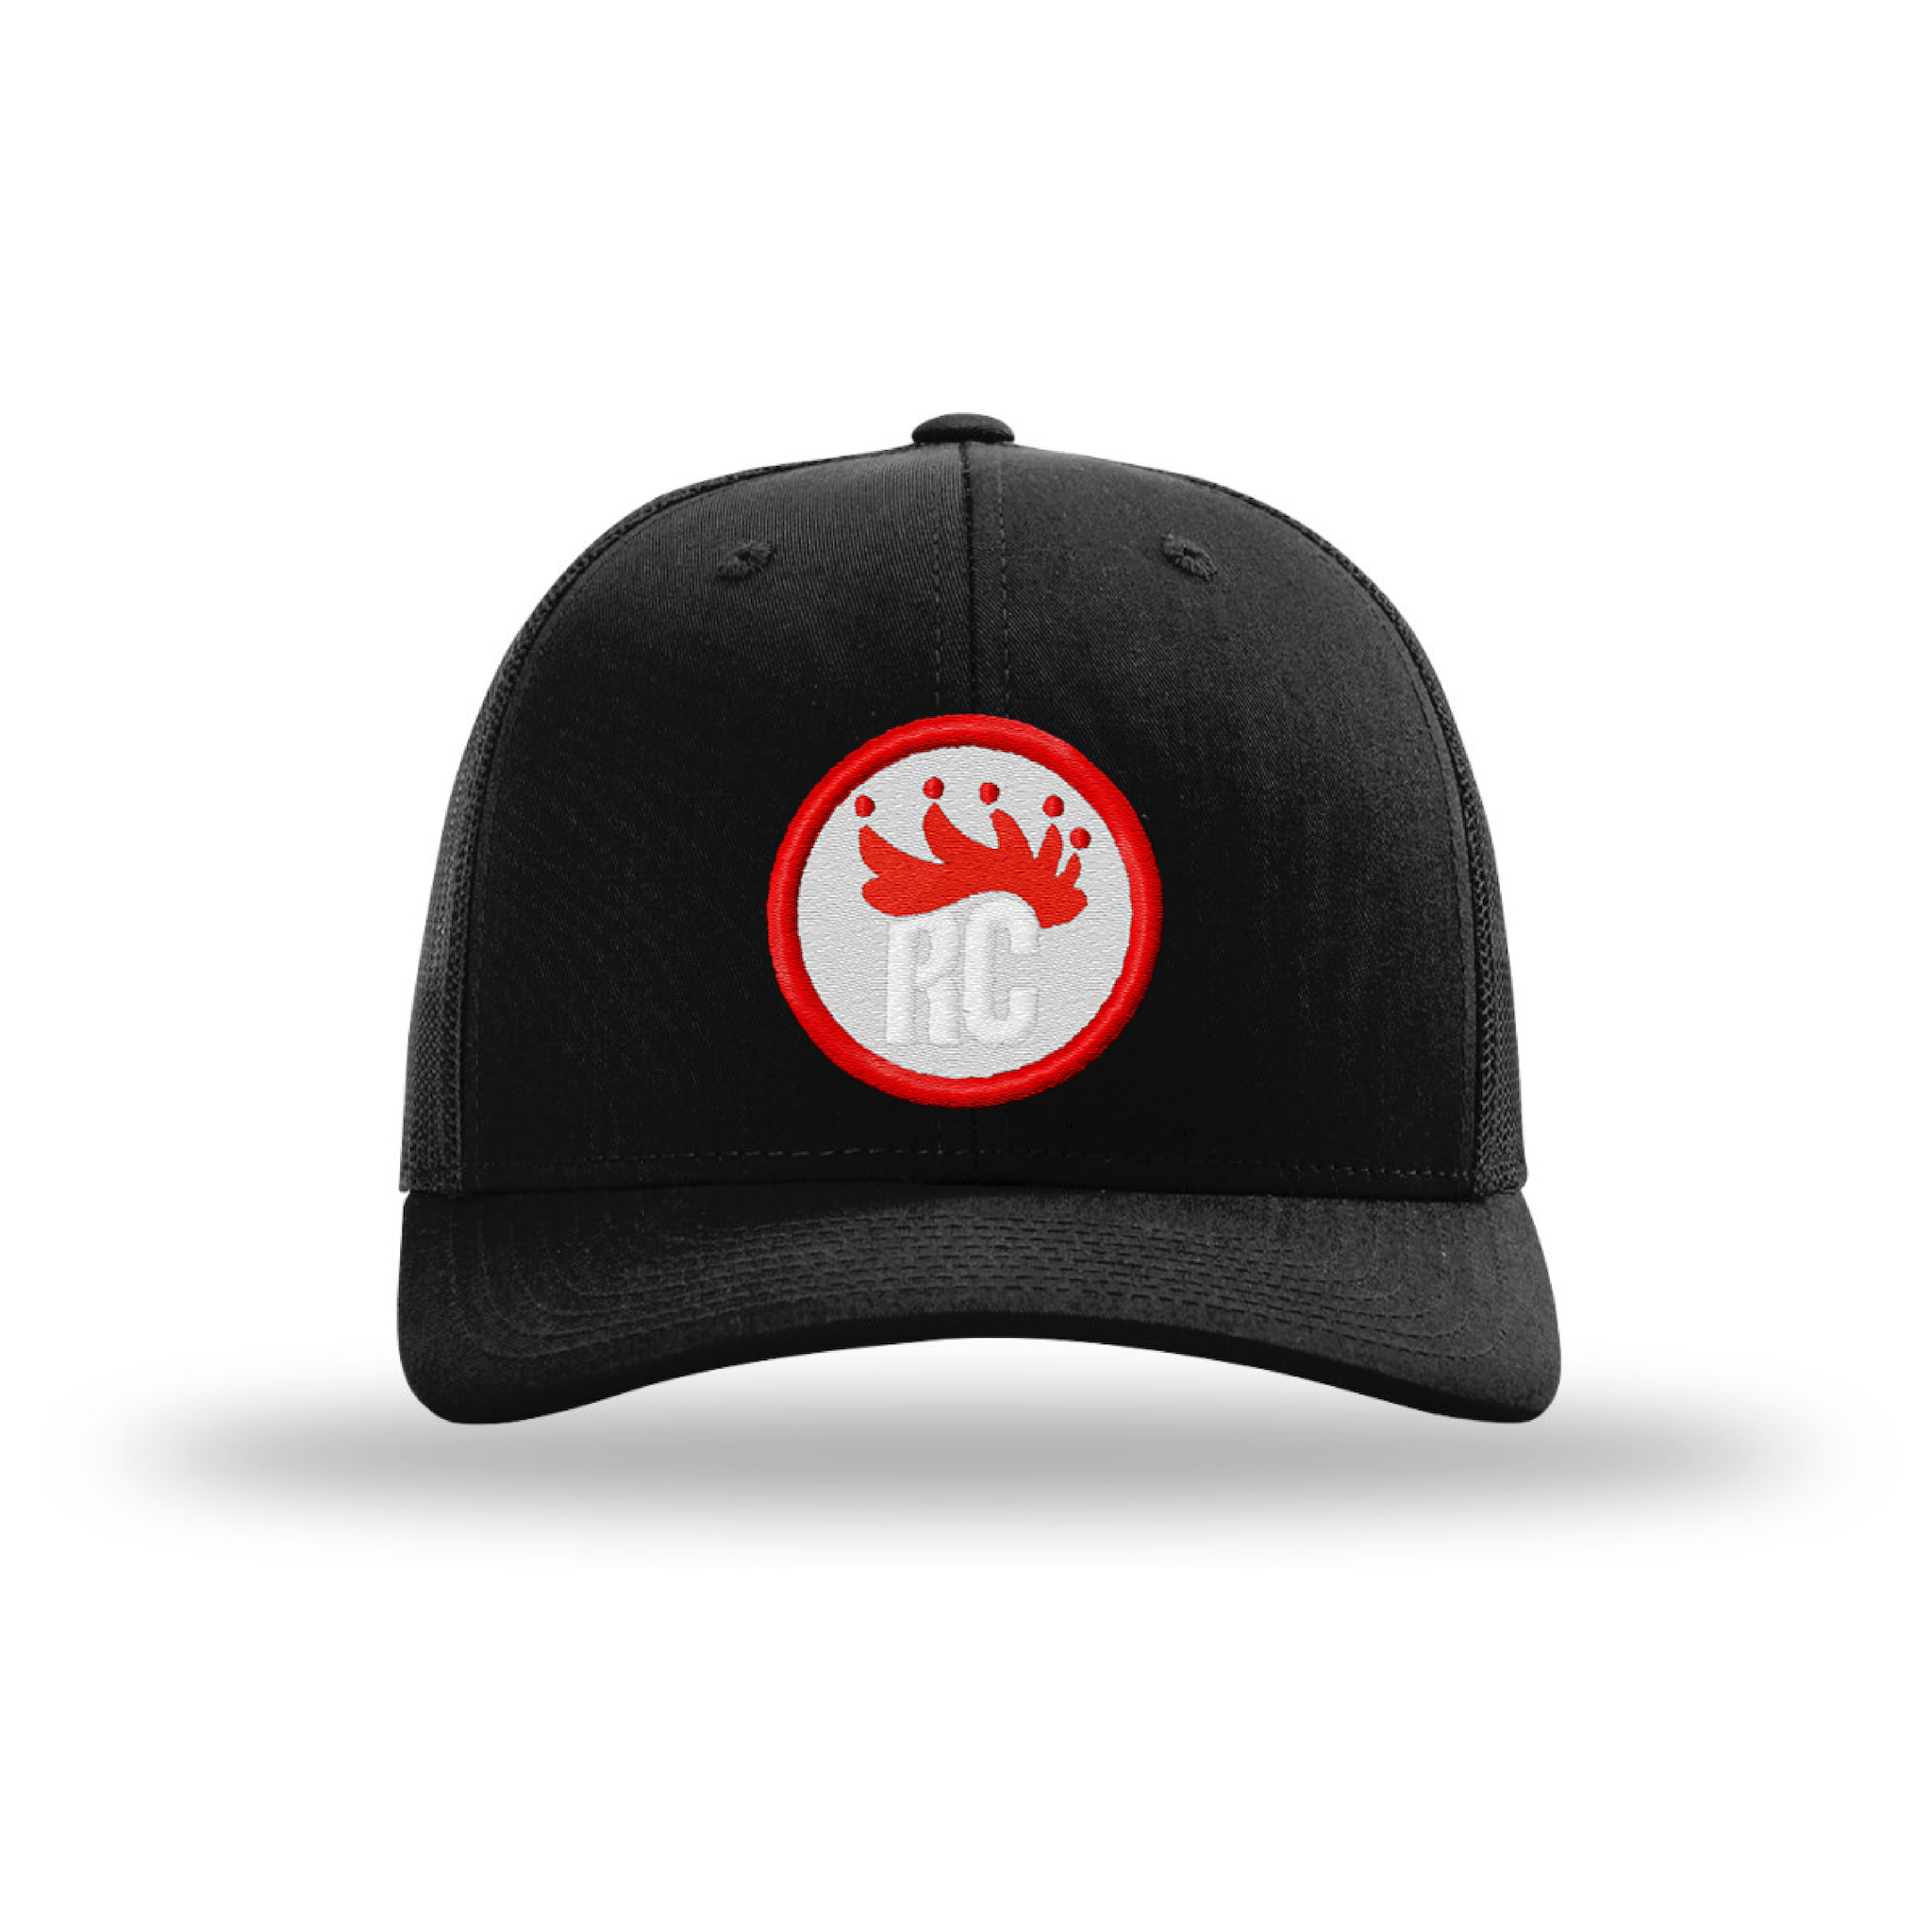 Mens Adjustable Trucker Hat | Rocky Cock Apparel Black on Black RC Style